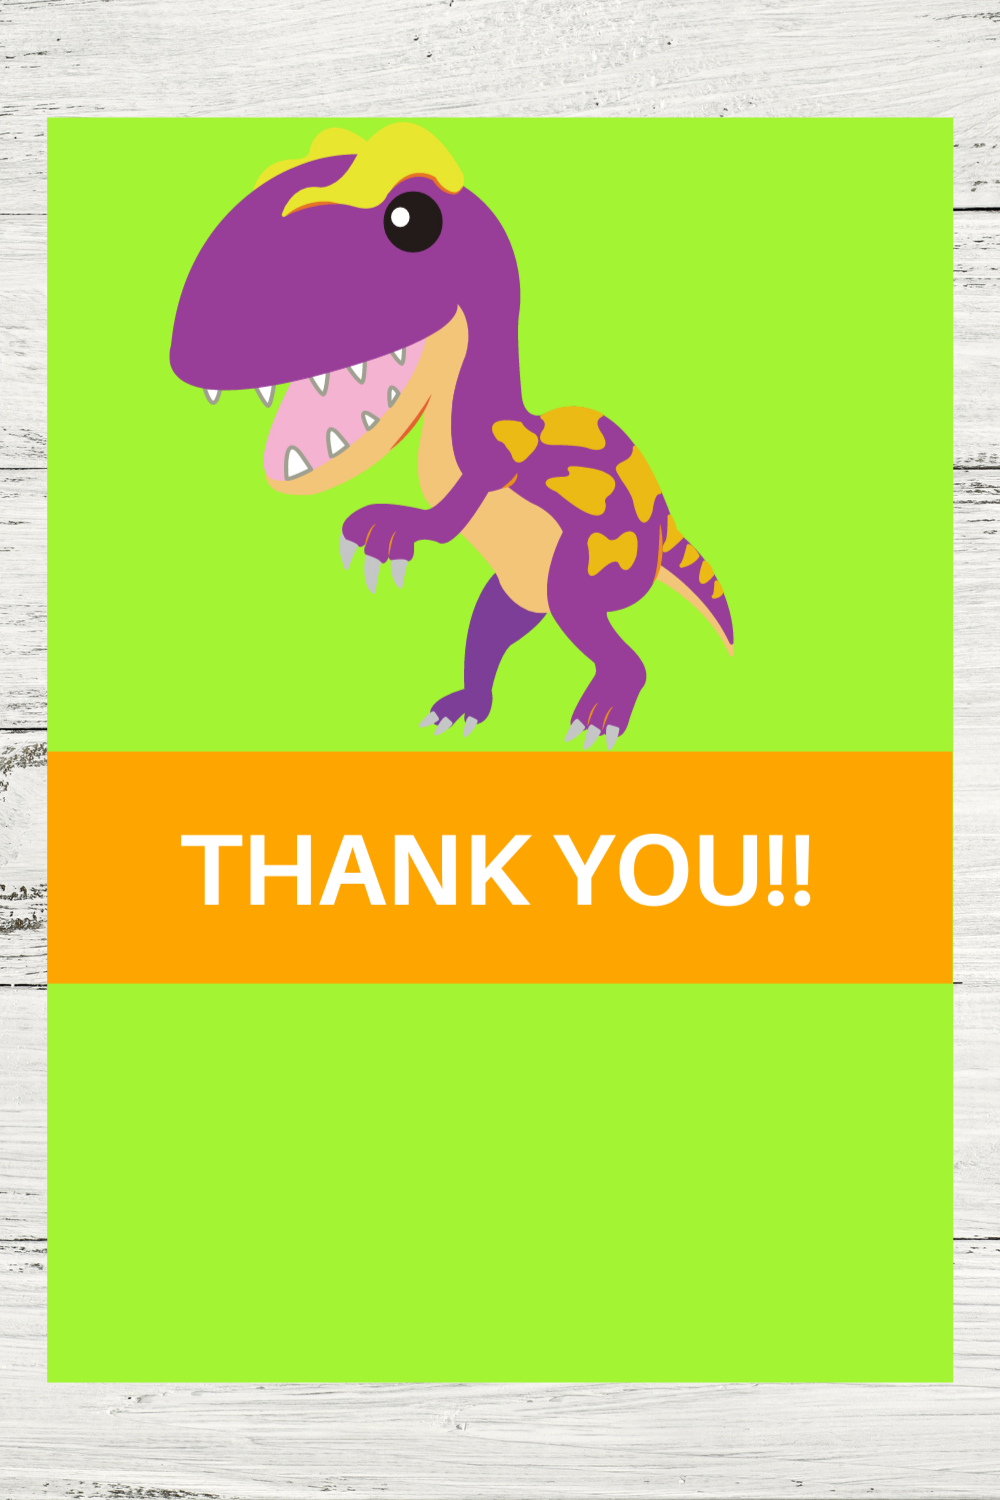 free download: dinosaur themed thank you card for a birthday party